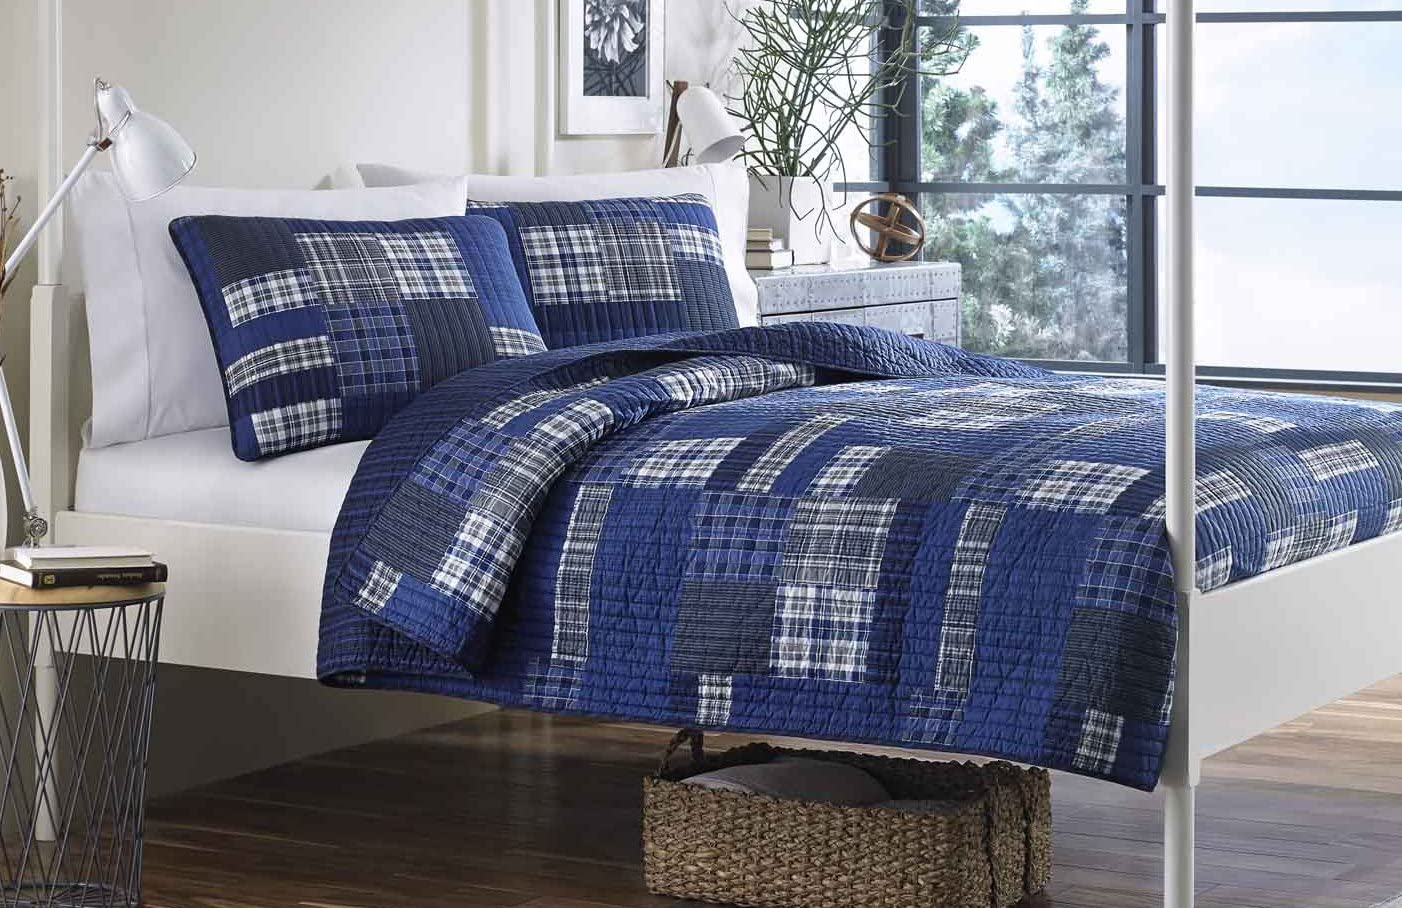 Amazon Com Eddie Bauer Home Eastmont Collection 100 Cotton Reversible Light Weight Quilt Bedspread With Matching Shams 3 Piece Bedding Set Pre Washed For Extra Comfortfull Queenblue Home Kitchen